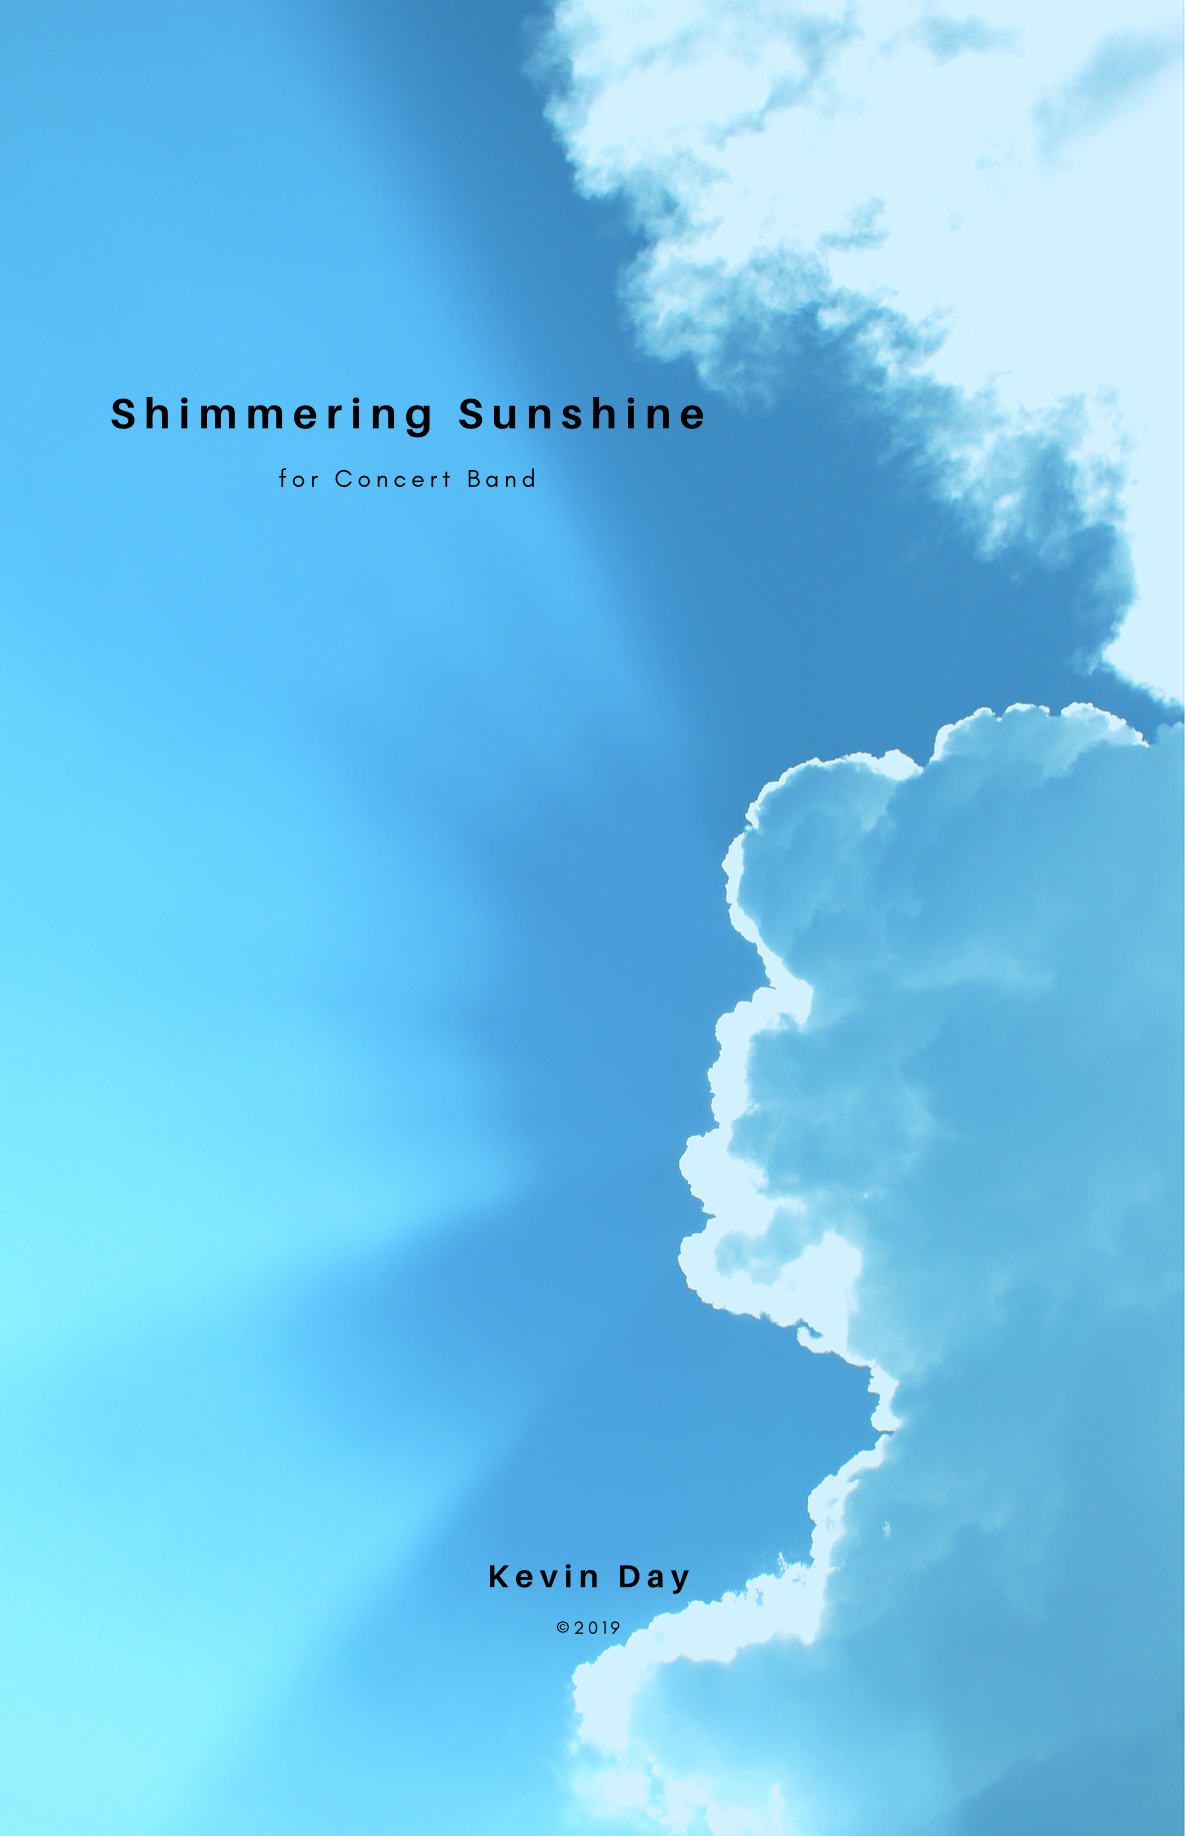 Shimmering Sunshine by Kevin Day